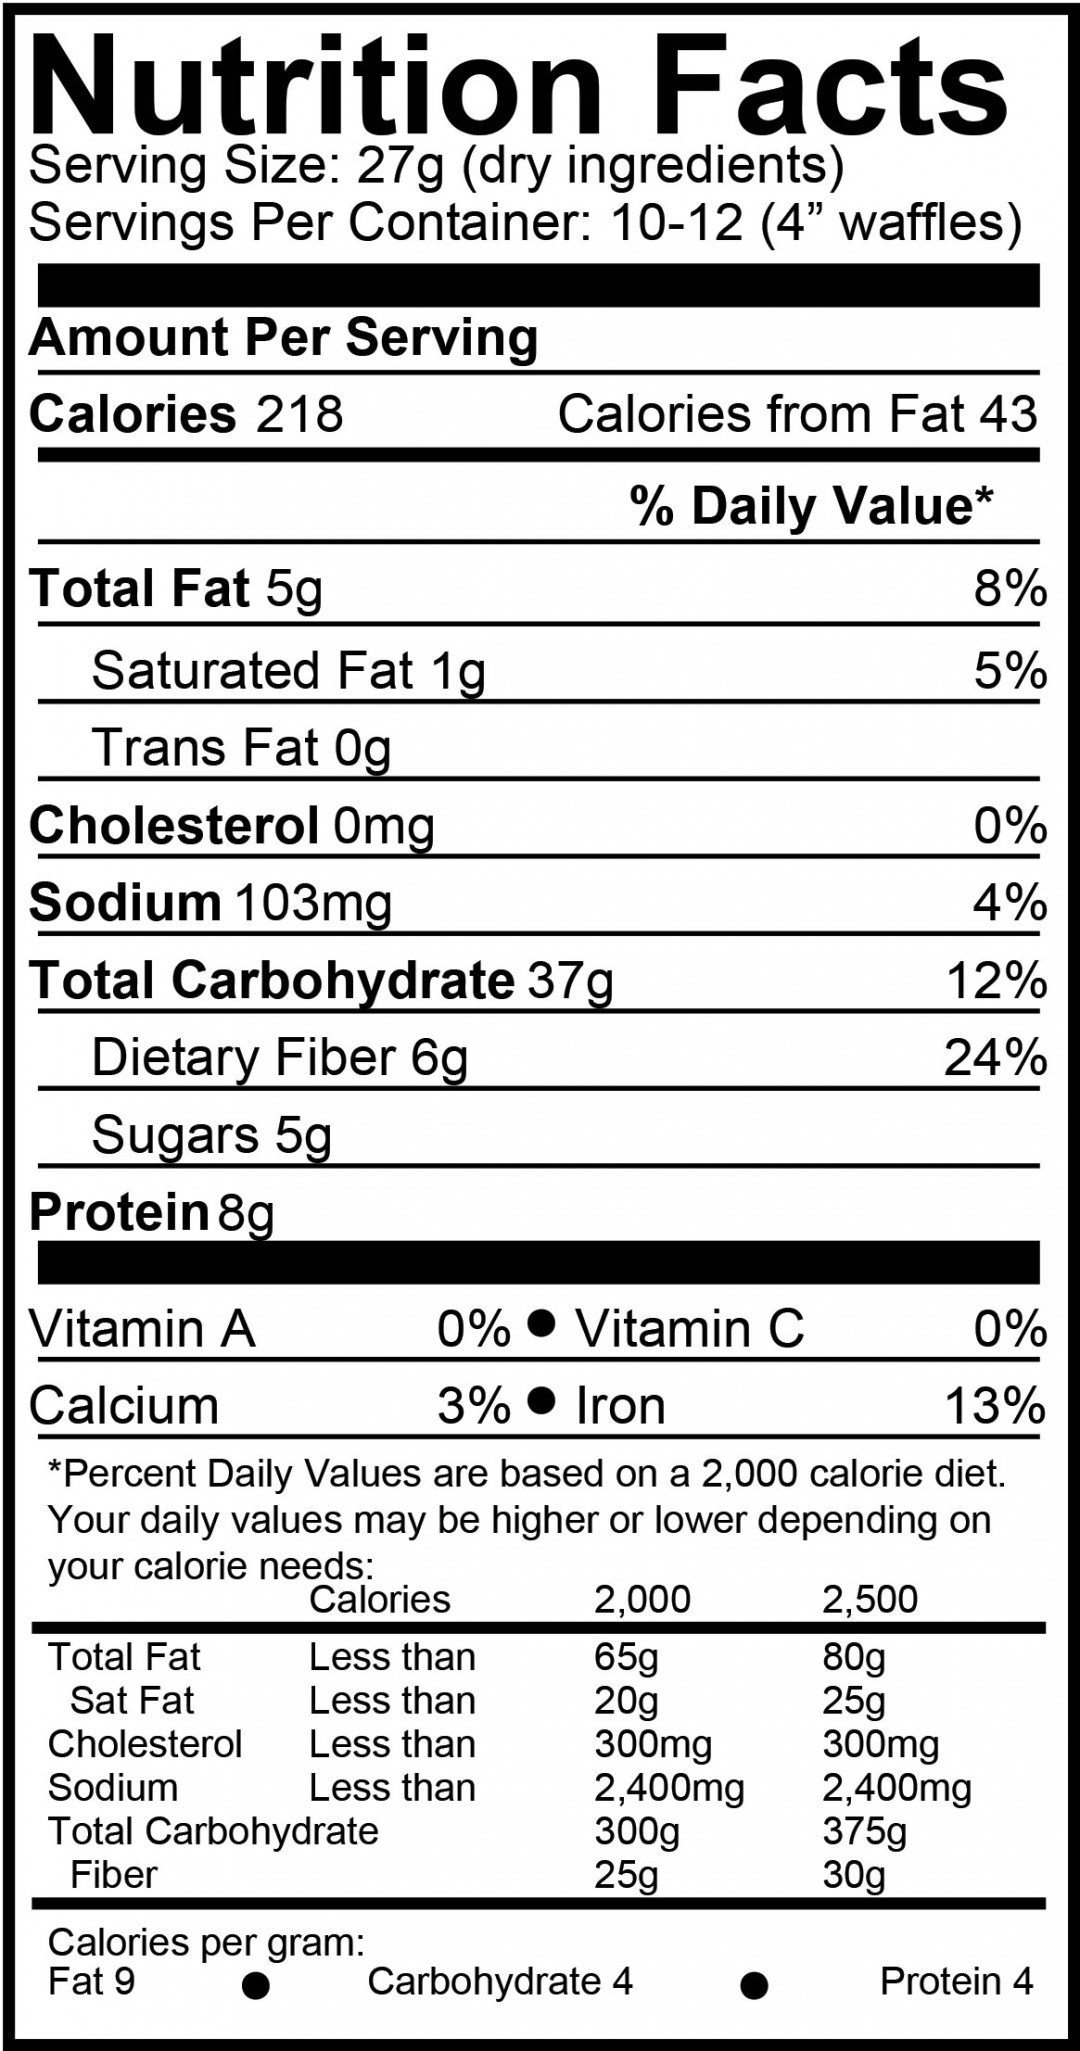 Top 10 Nutrition Facts That Everyone Agrees on